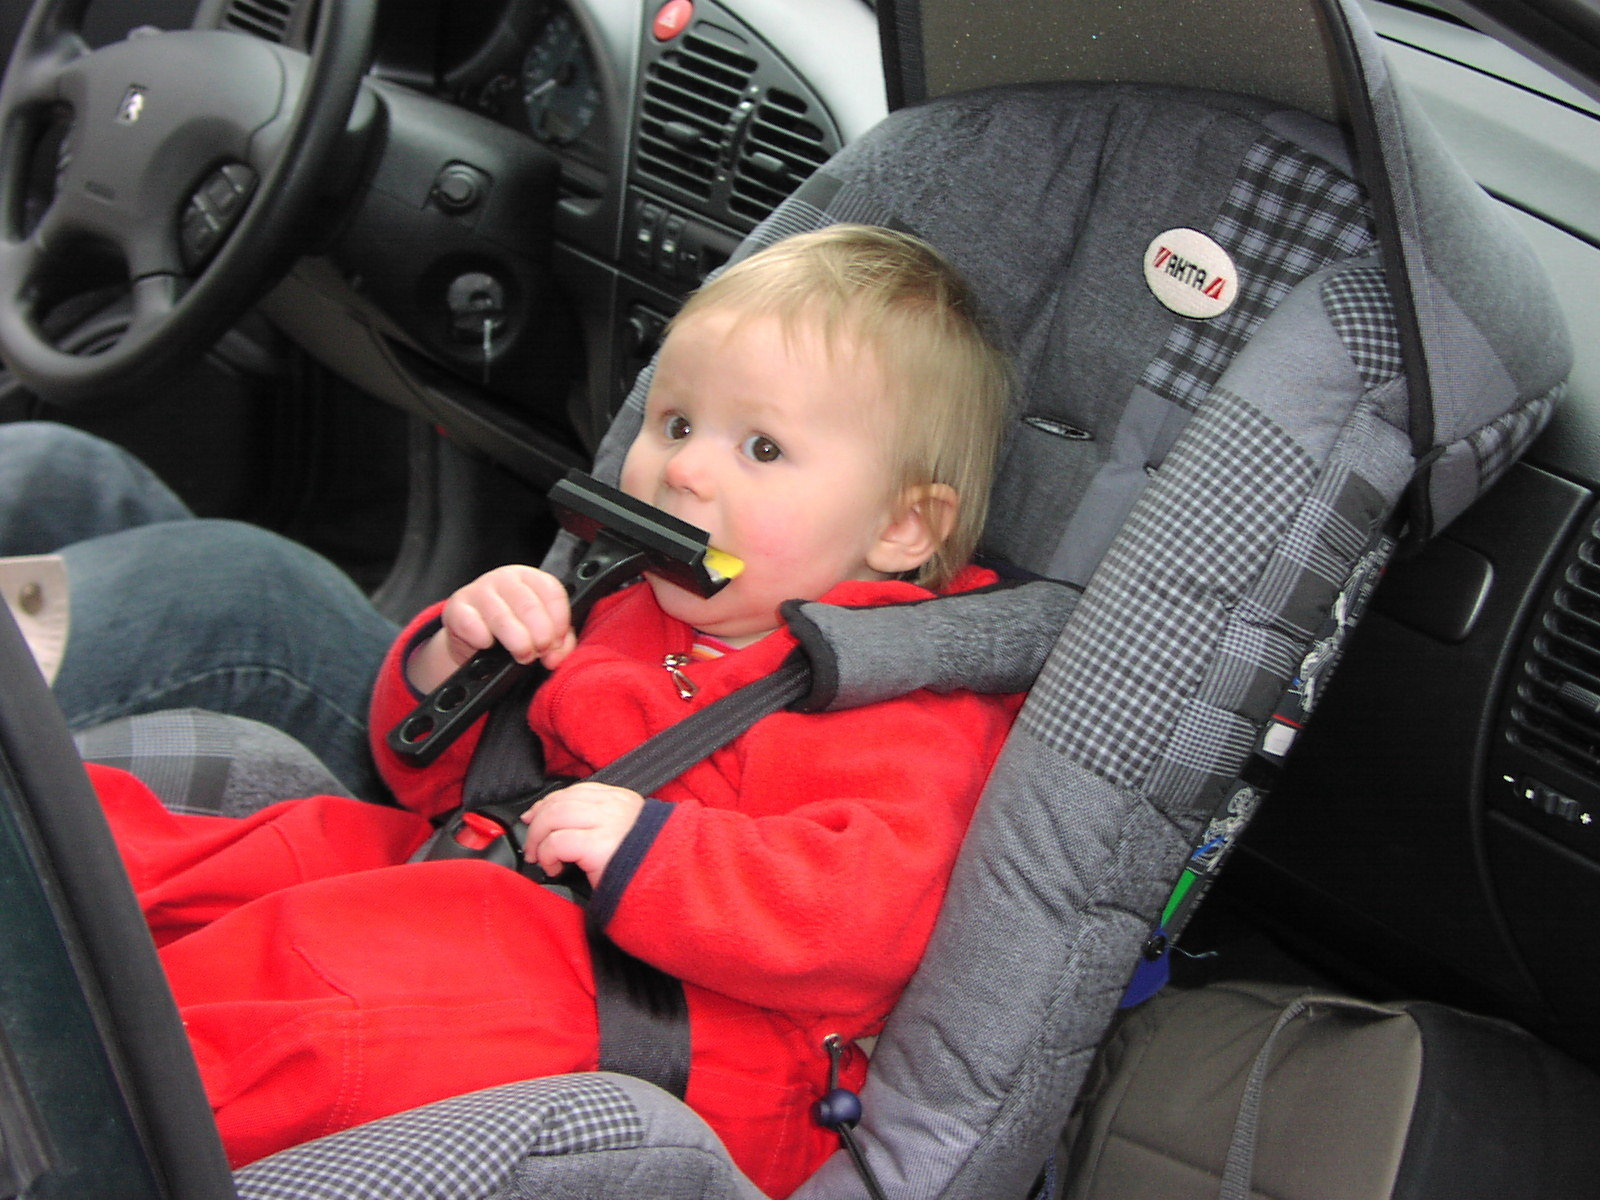 File:Rear-facing infant car seat.jpg - Wikimedia Commons